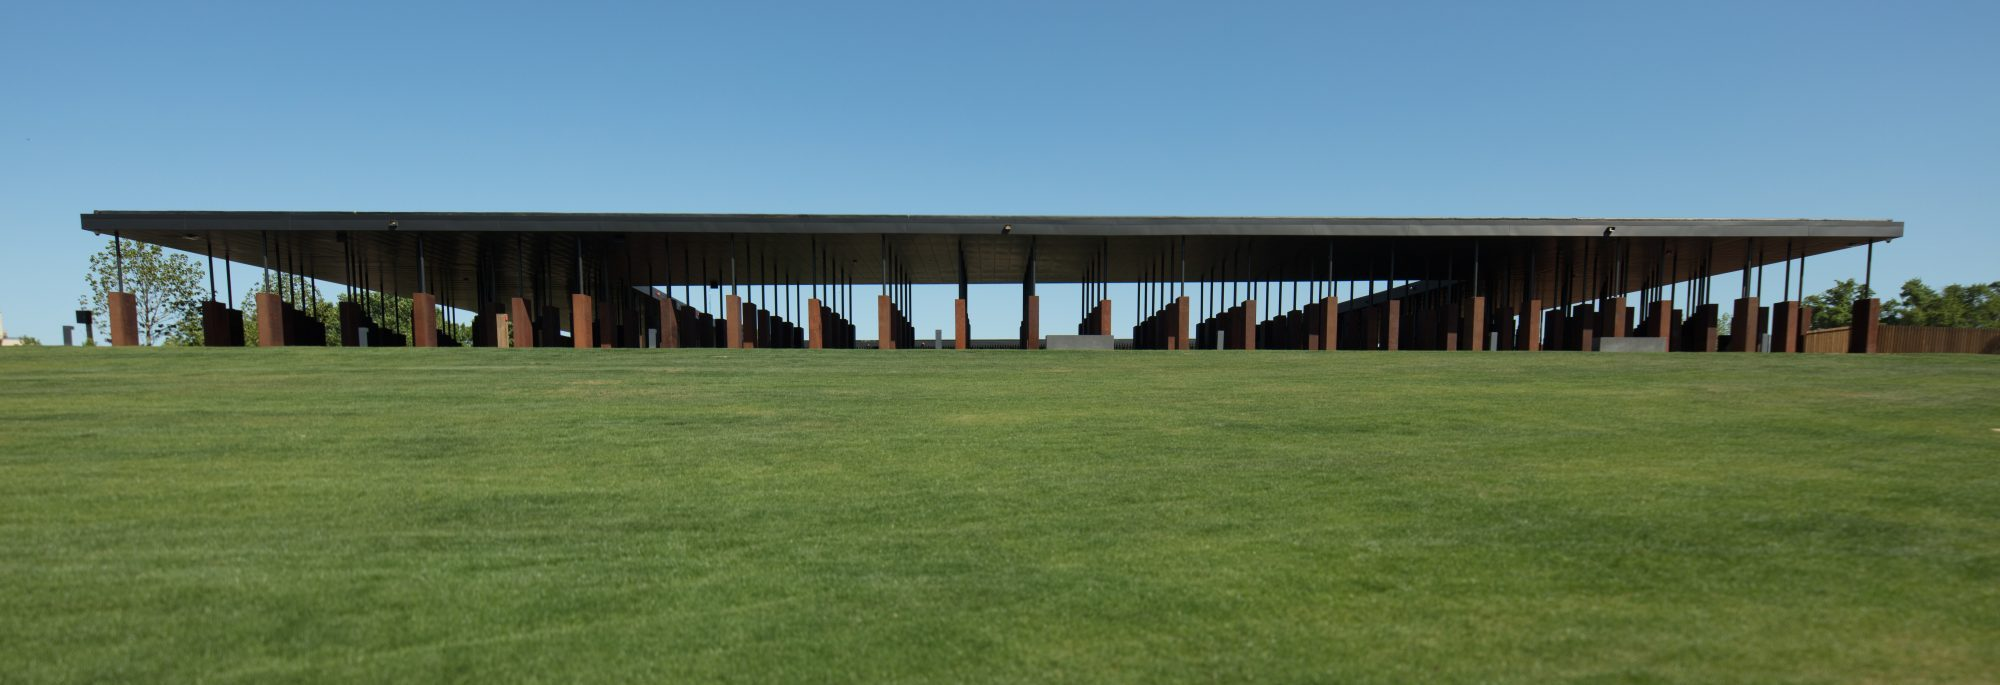 wide exterior shot of the national memorial for peace and justice